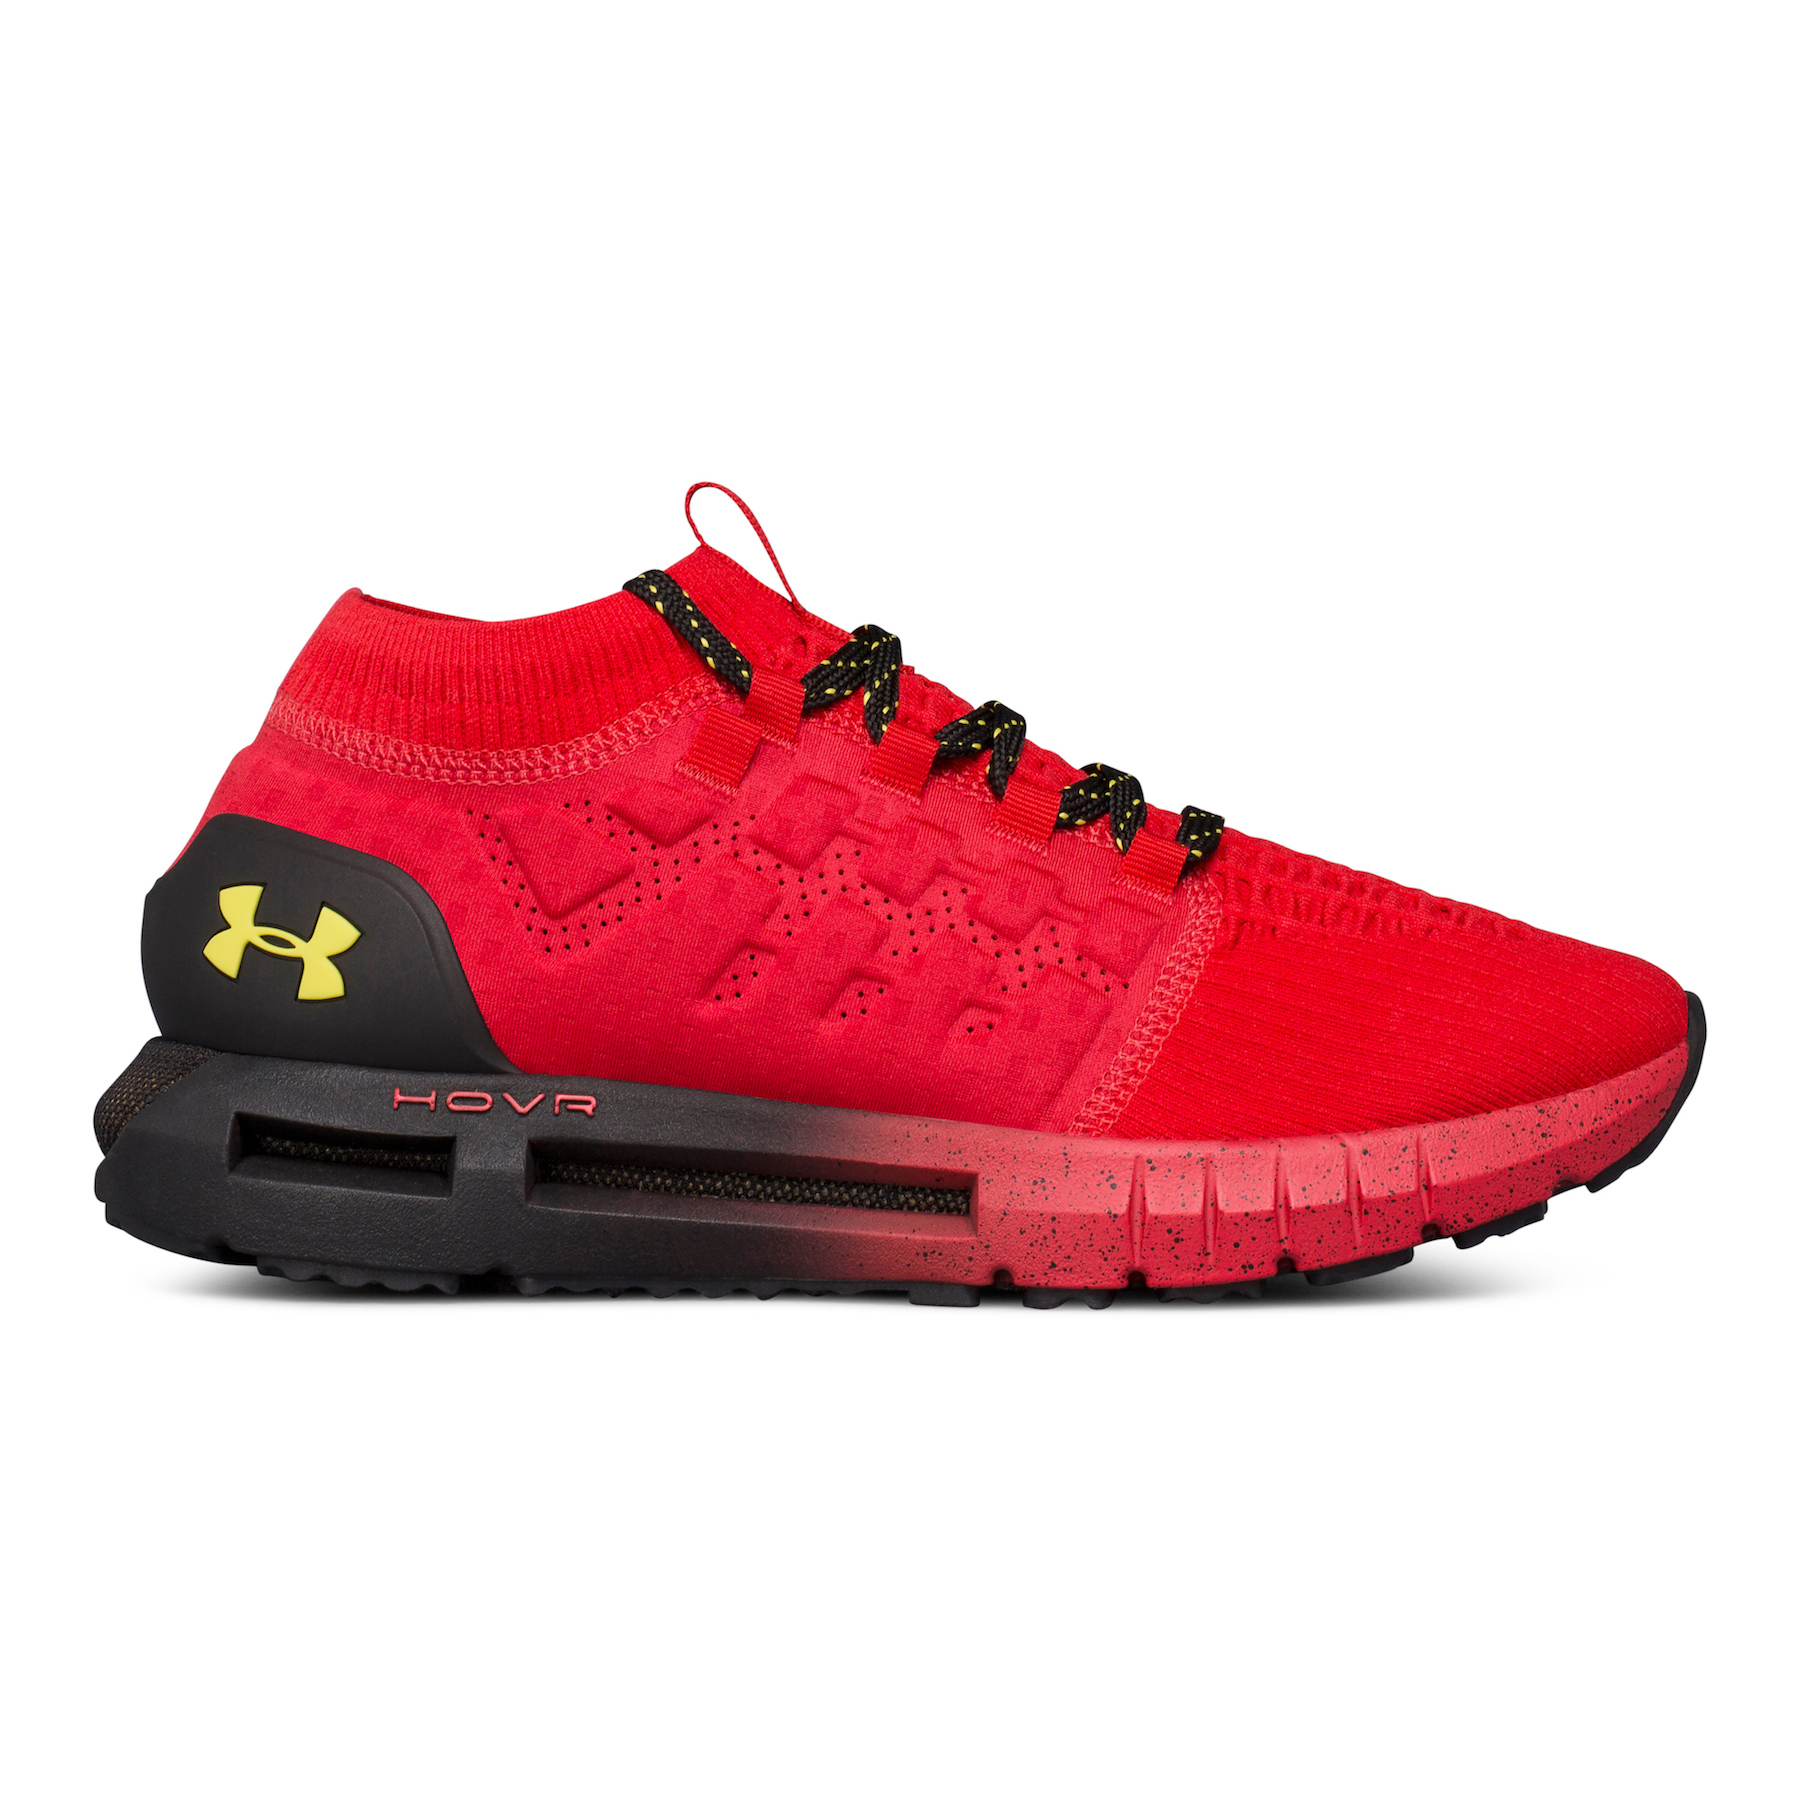 Under Armour Sko Hovr Rød Kx9mDZYH